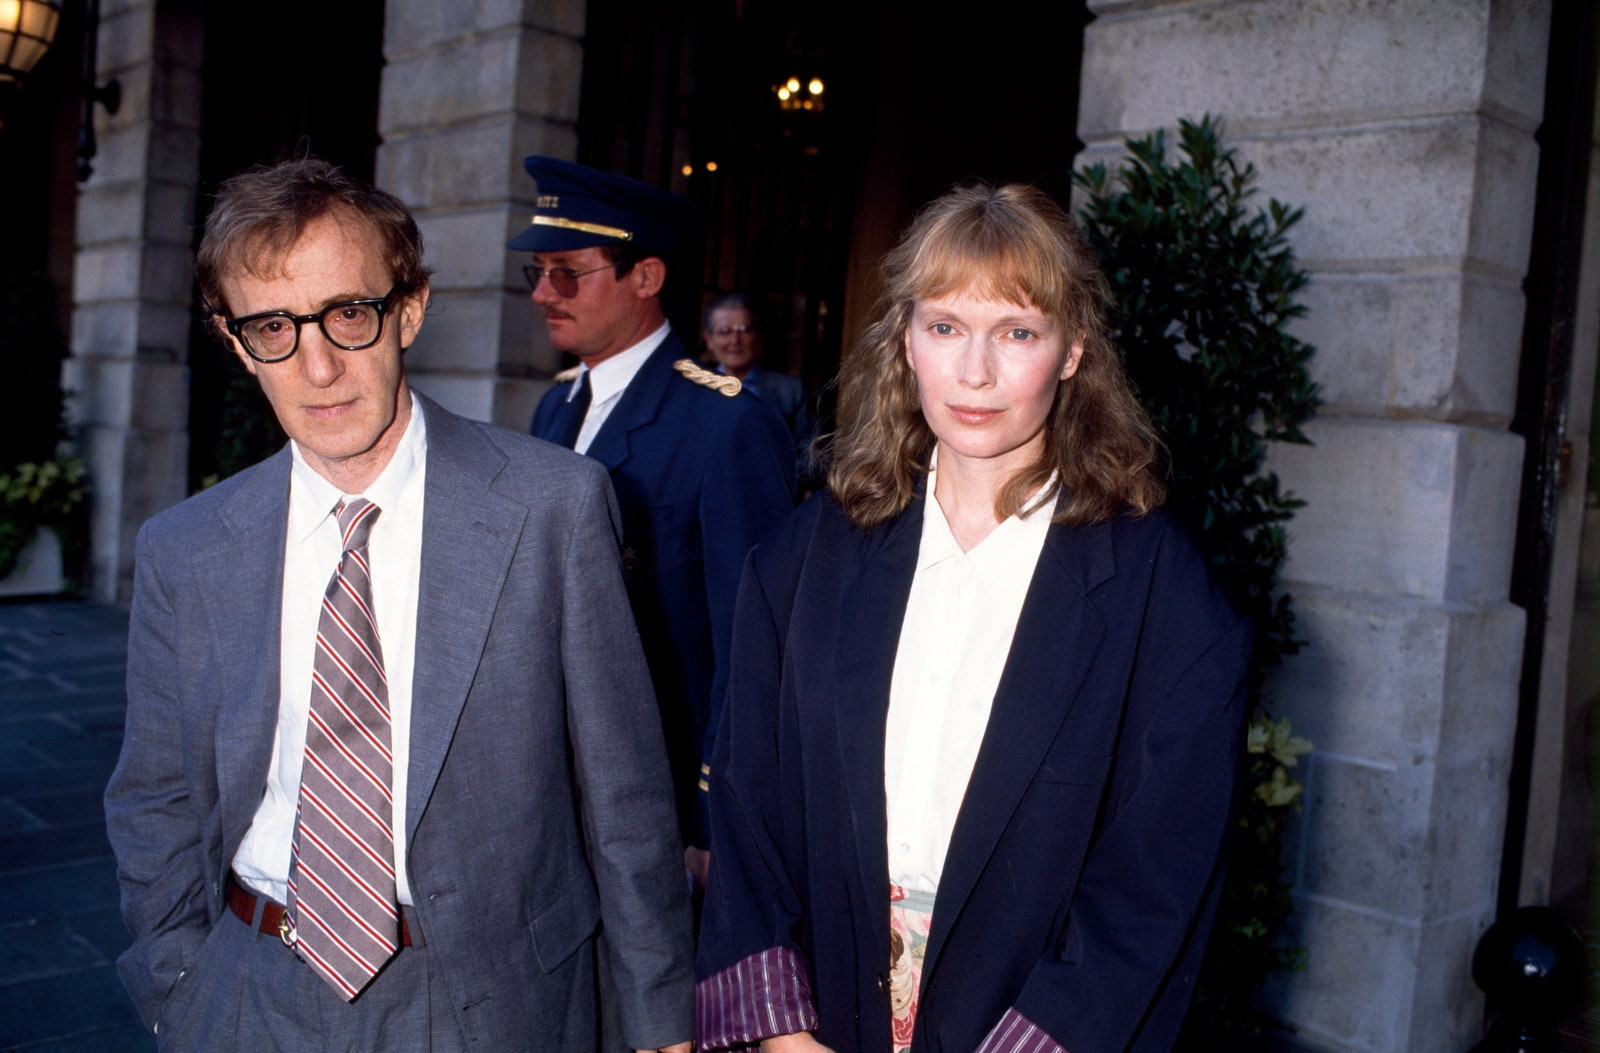 Inside the scandal between Mia Farrow and Woody Allen amid accusations of incest